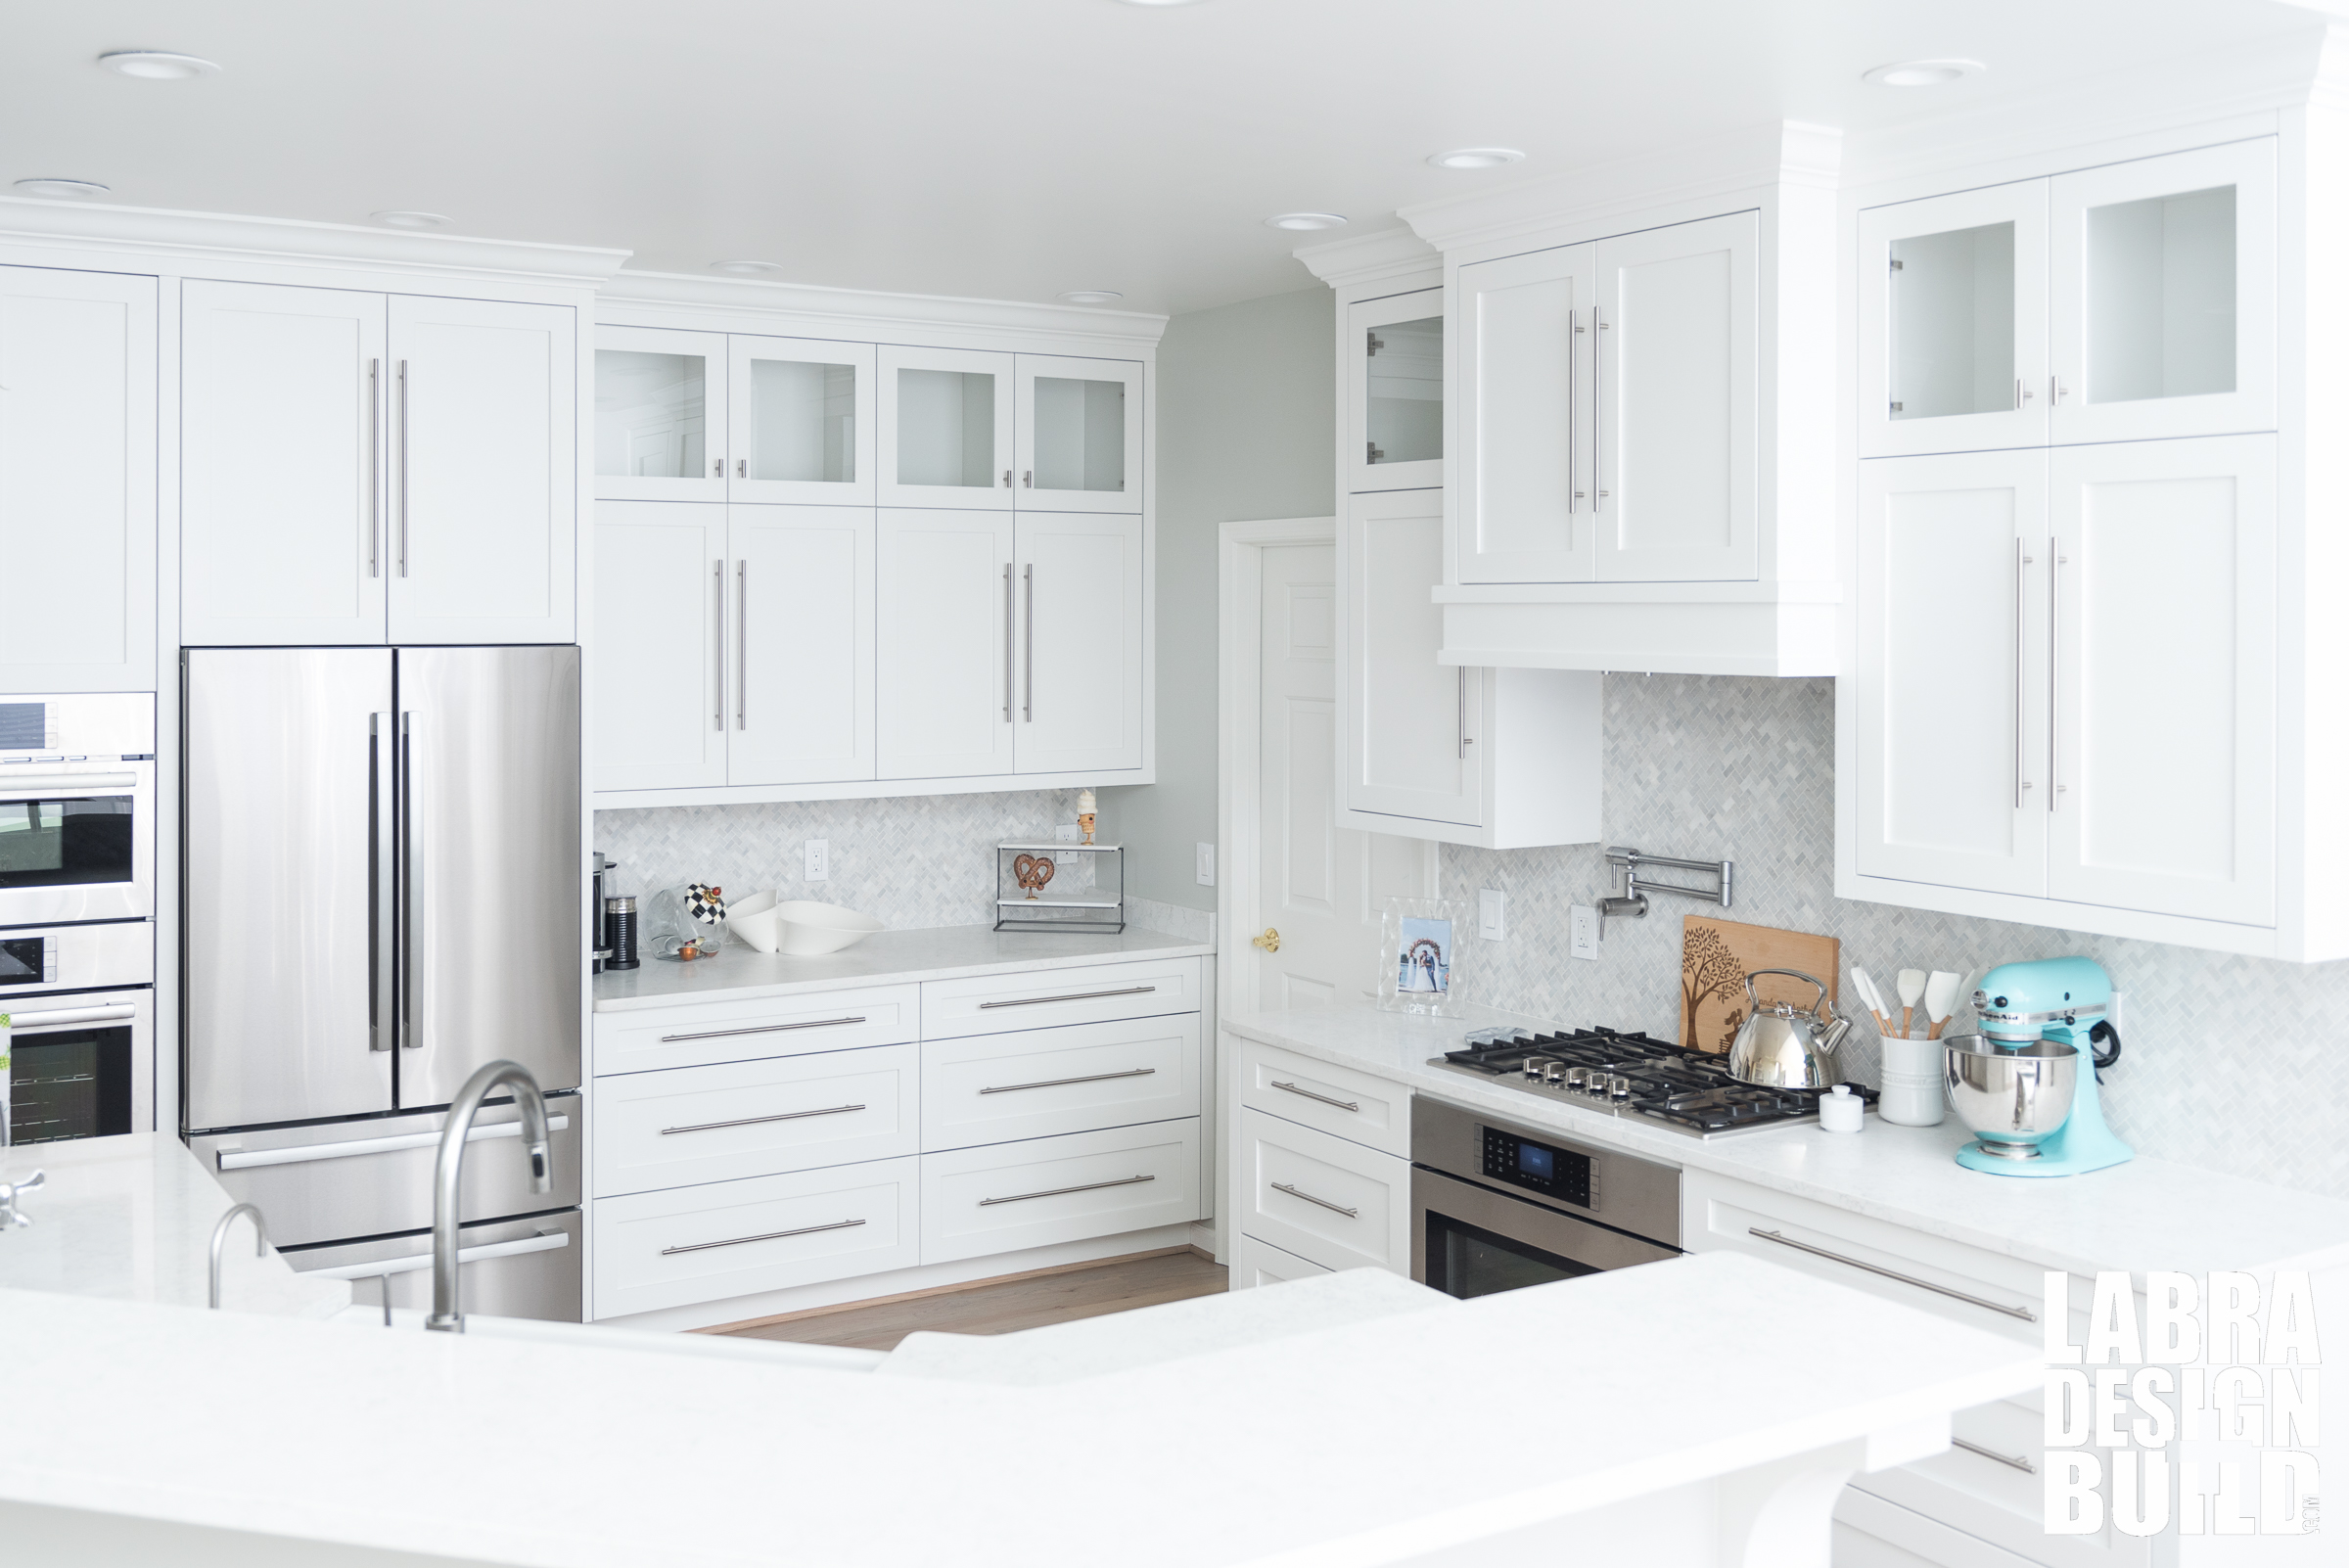 Dreamy White Custom Kitchen Labra Design Build